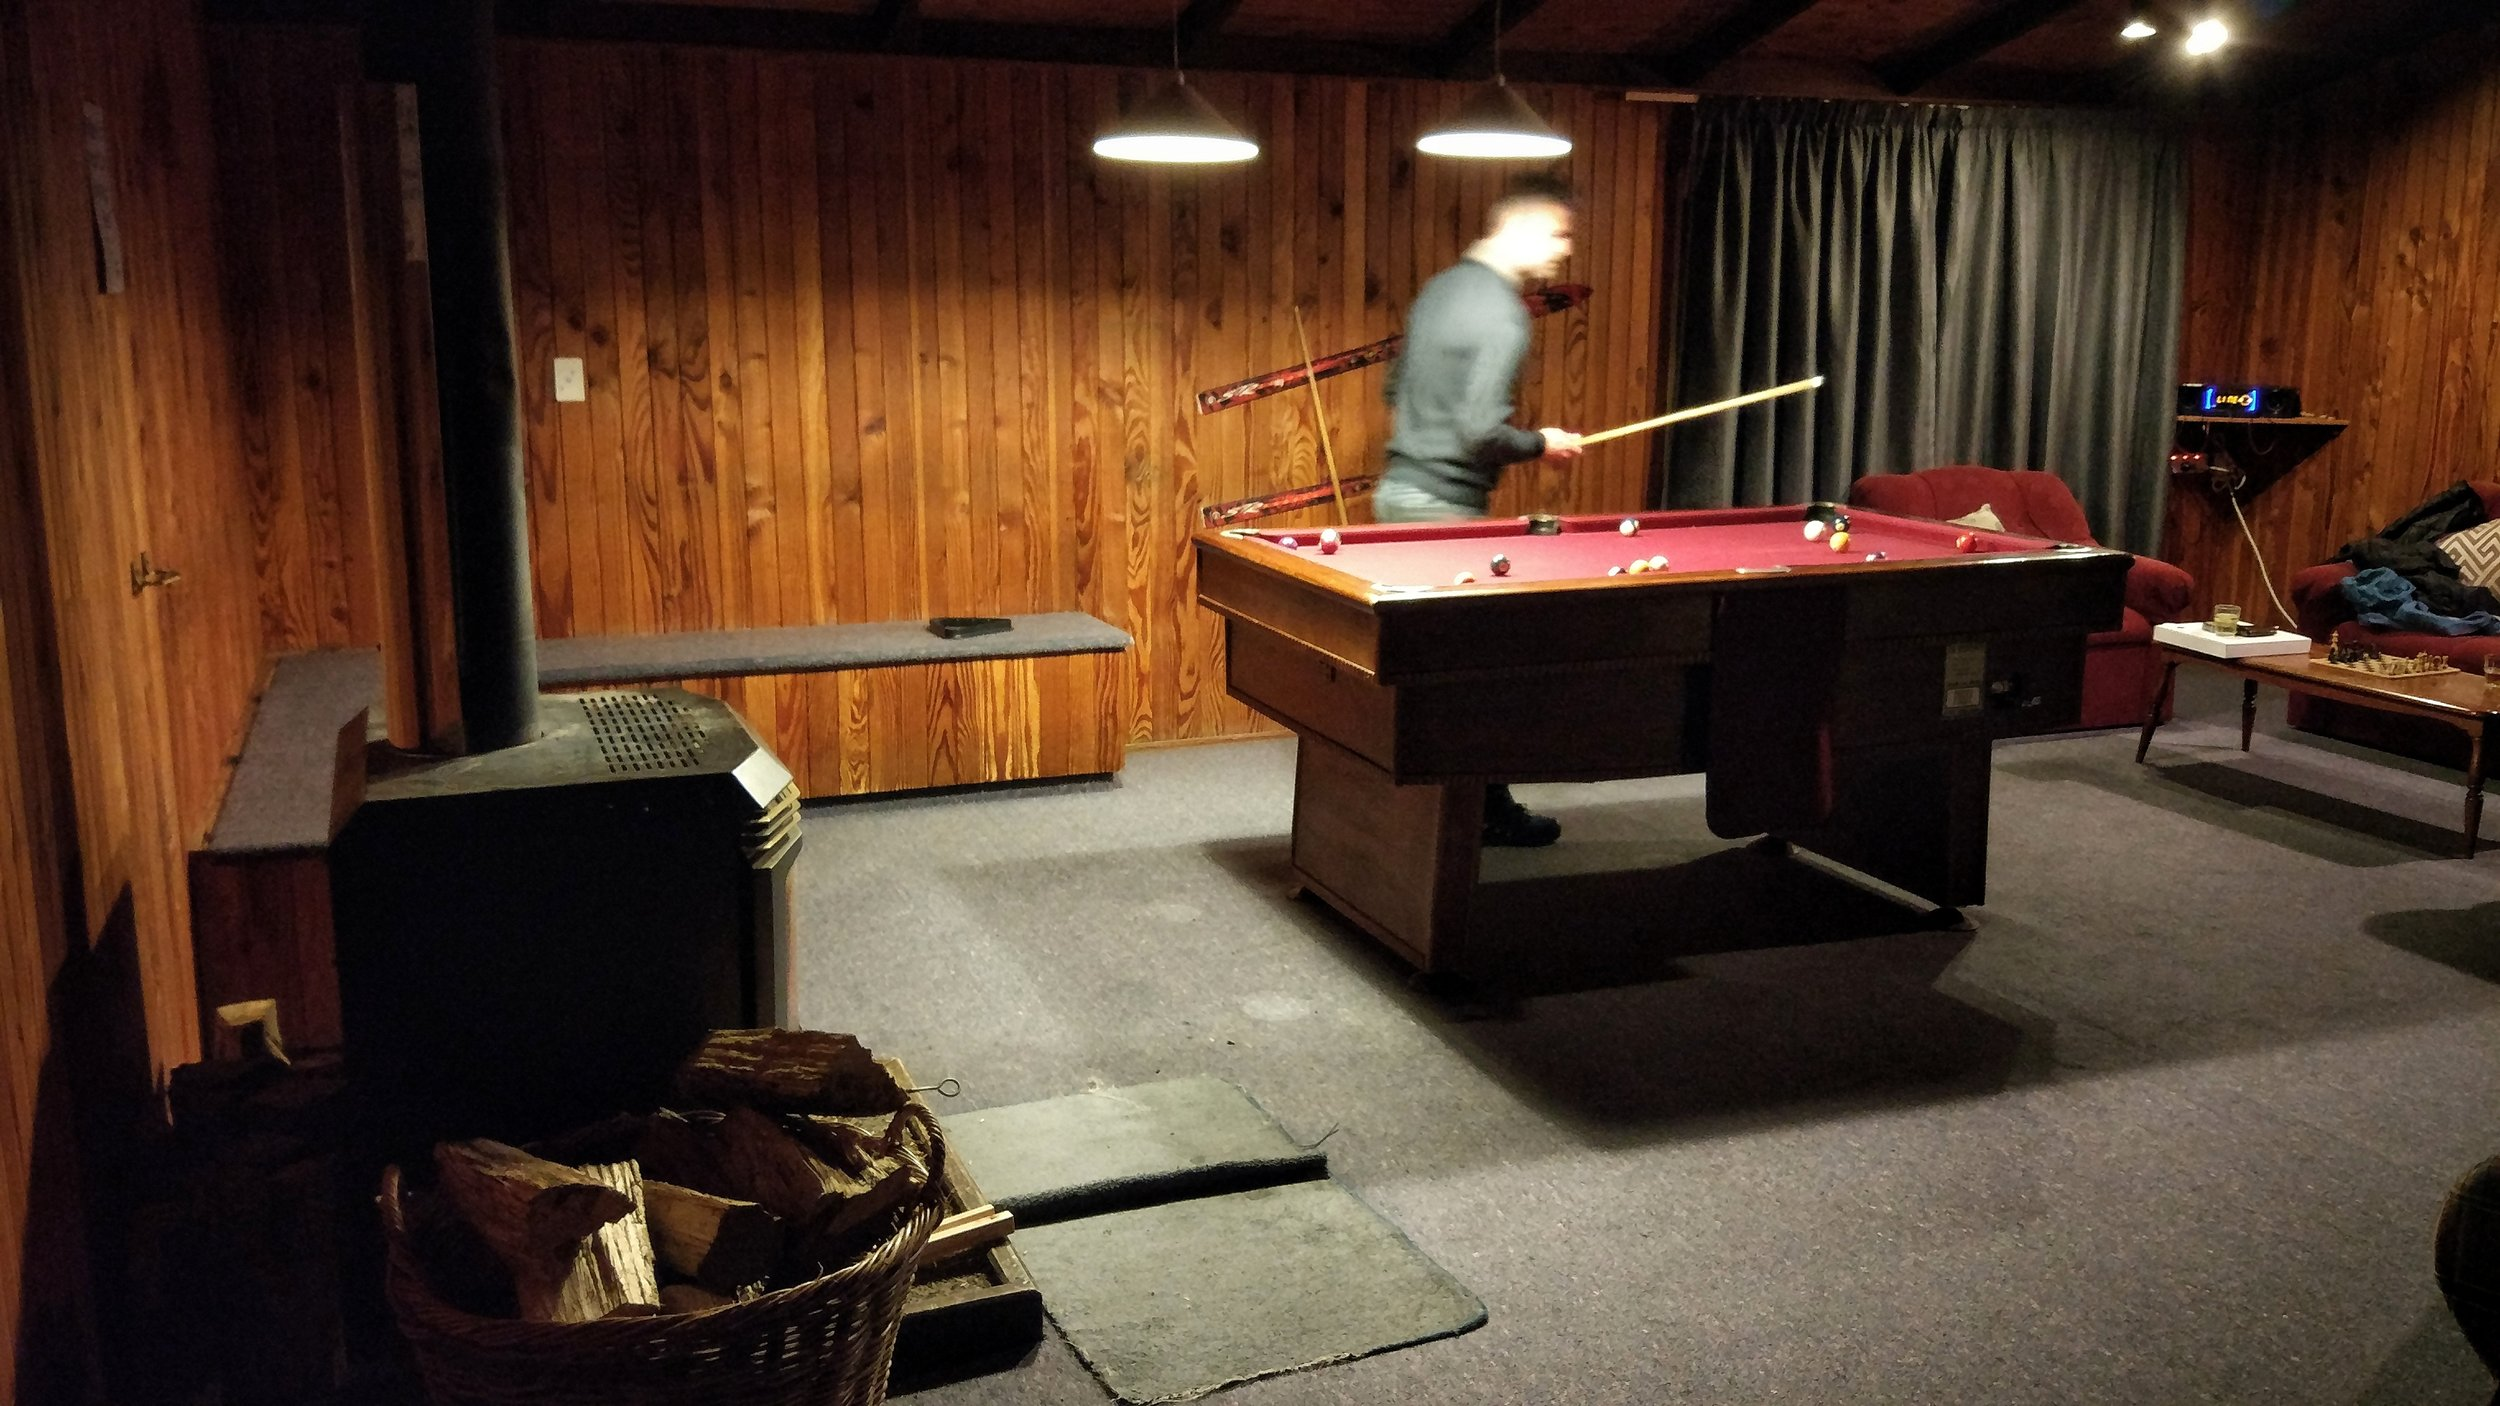 Howard's Mountain Lodge - Lovely and well-priced backpackers in National Park Village. Warm thanks to heating and double glazing. Charming communal area with log fire and free pool table. Free spa pool to soak after hiking or skiing.